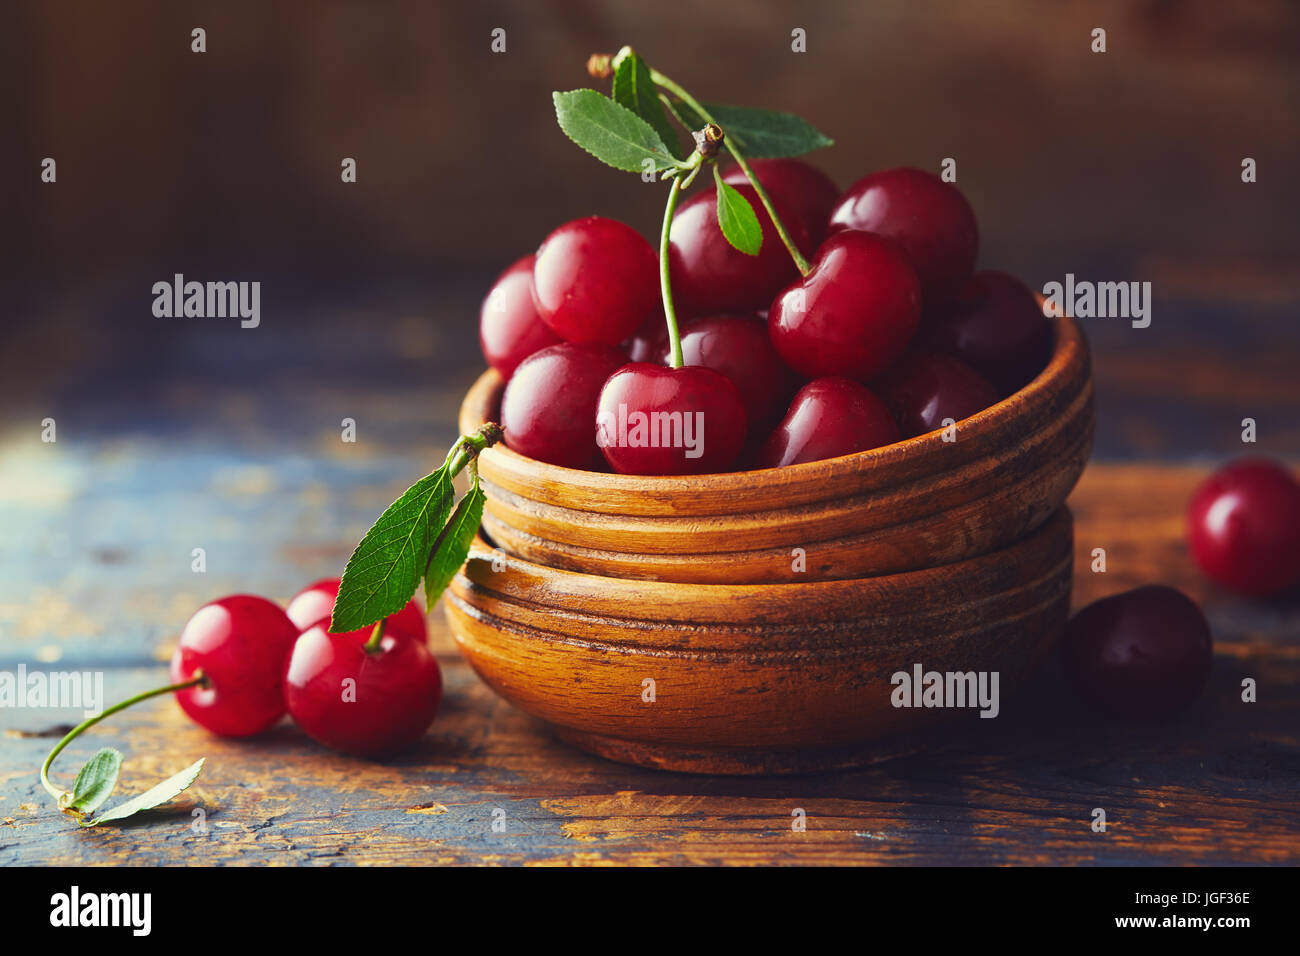 Cherries in a bowl on a wooden table. Freshly harvested cherries in a bowl on a wooden table. - Stock Image